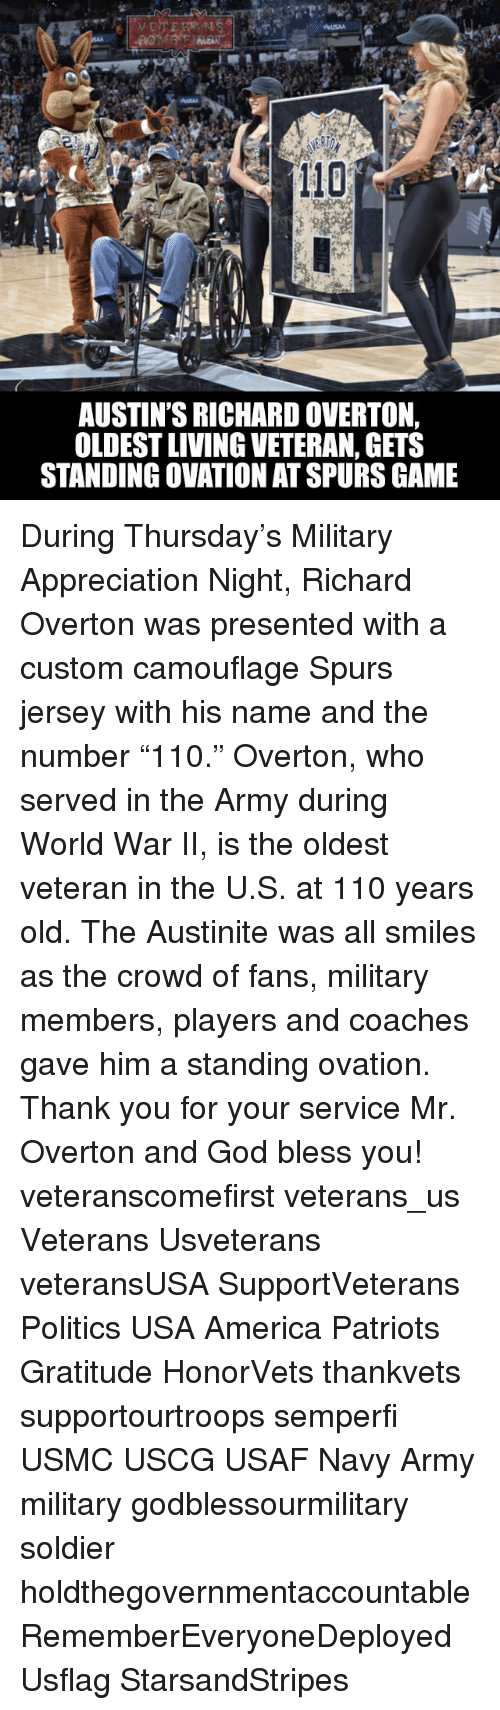 """Served in the Army: USAA  110  AUSTIN'S RICHARD OVERTON,  OLDESTLIVING VETERAN, GETS  STANDING OVATION ATSPURS GAME During Thursday's Military Appreciation Night, Richard Overton was presented with a custom camouflage Spurs jersey with his name and the number """"110."""" Overton, who served in the Army during World War II, is the oldest veteran in the U.S. at 110 years old. The Austinite was all smiles as the crowd of fans, military members, players and coaches gave him a standing ovation. Thank you for your service Mr. Overton and God bless you! veteranscomefirst veterans_us Veterans Usveterans veteransUSA SupportVeterans Politics USA America Patriots Gratitude HonorVets thankvets supportourtroops semperfi USMC USCG USAF Navy Army military godblessourmilitary soldier holdthegovernmentaccountable RememberEveryoneDeployed Usflag StarsandStripes"""